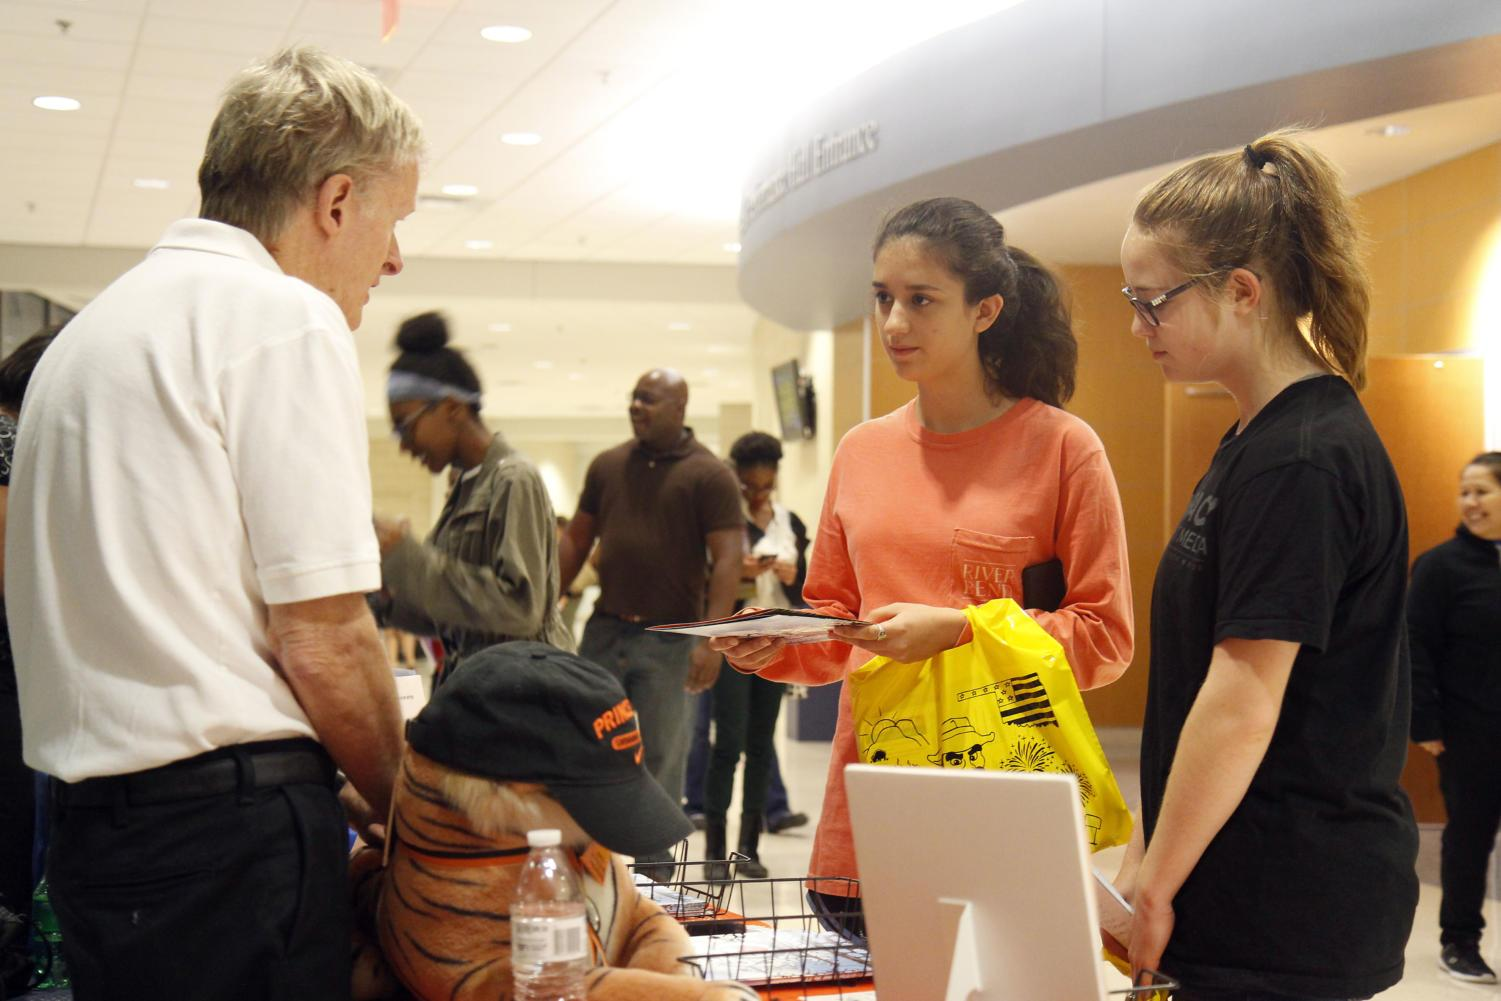 Sophomores Isabella Estes and Brinley Koenig speak with a college representative at College and Career night. The event was held at The Center to give students a chance to speak with admissions counselors from schools across Texas.